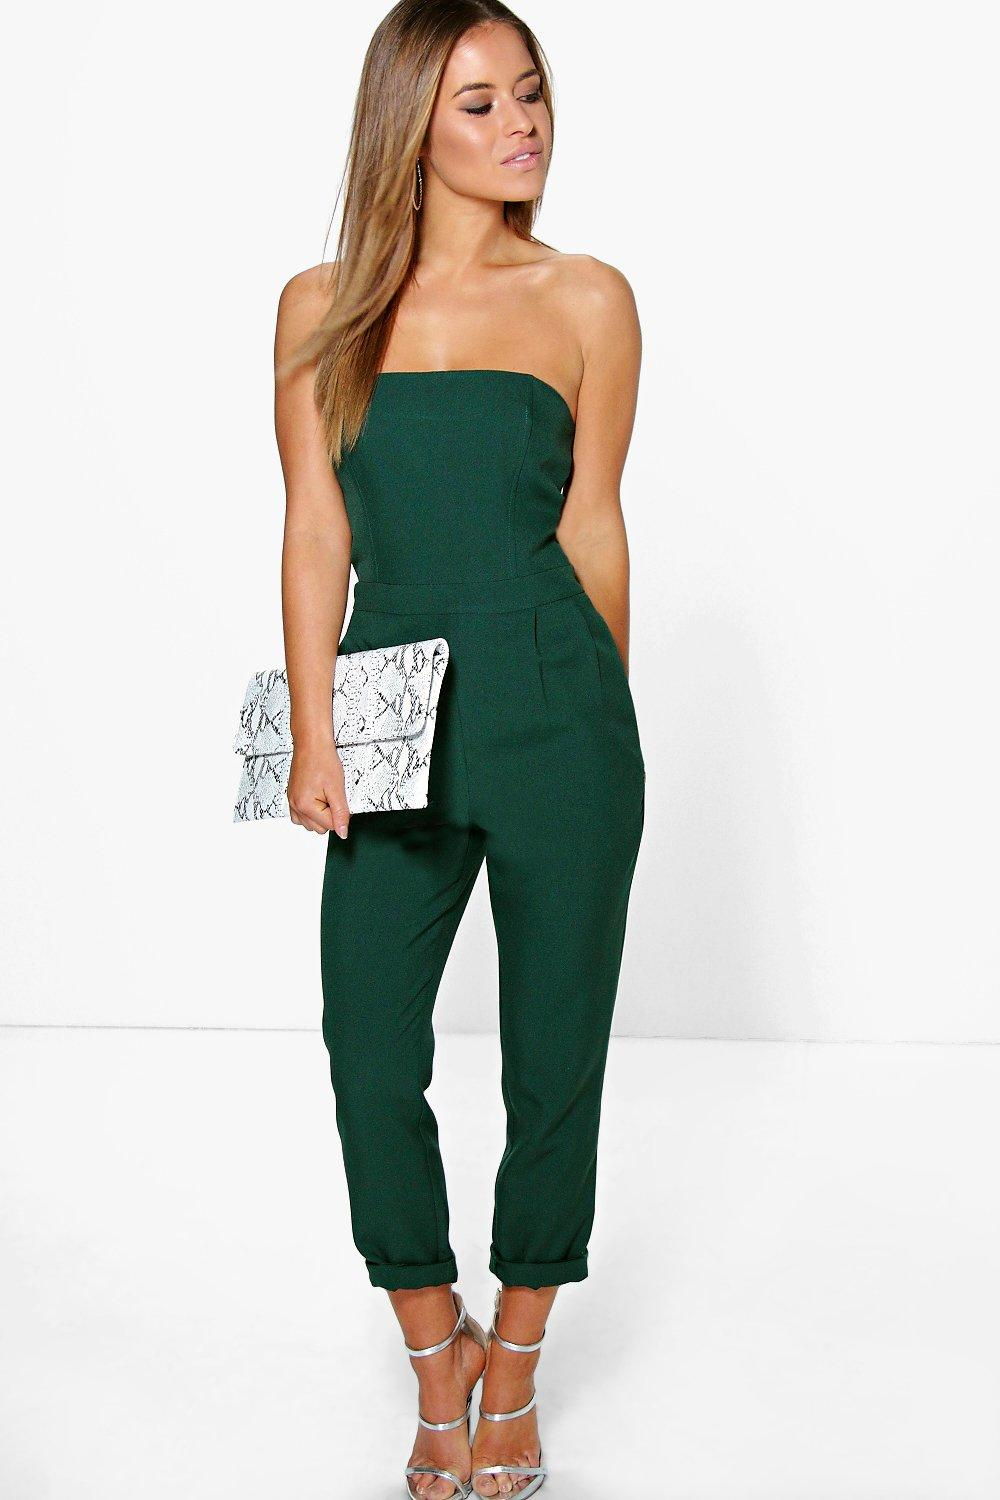 a0c83e35f4e Petite Bandeau Tailored Jumpsuit. Hover to zoom